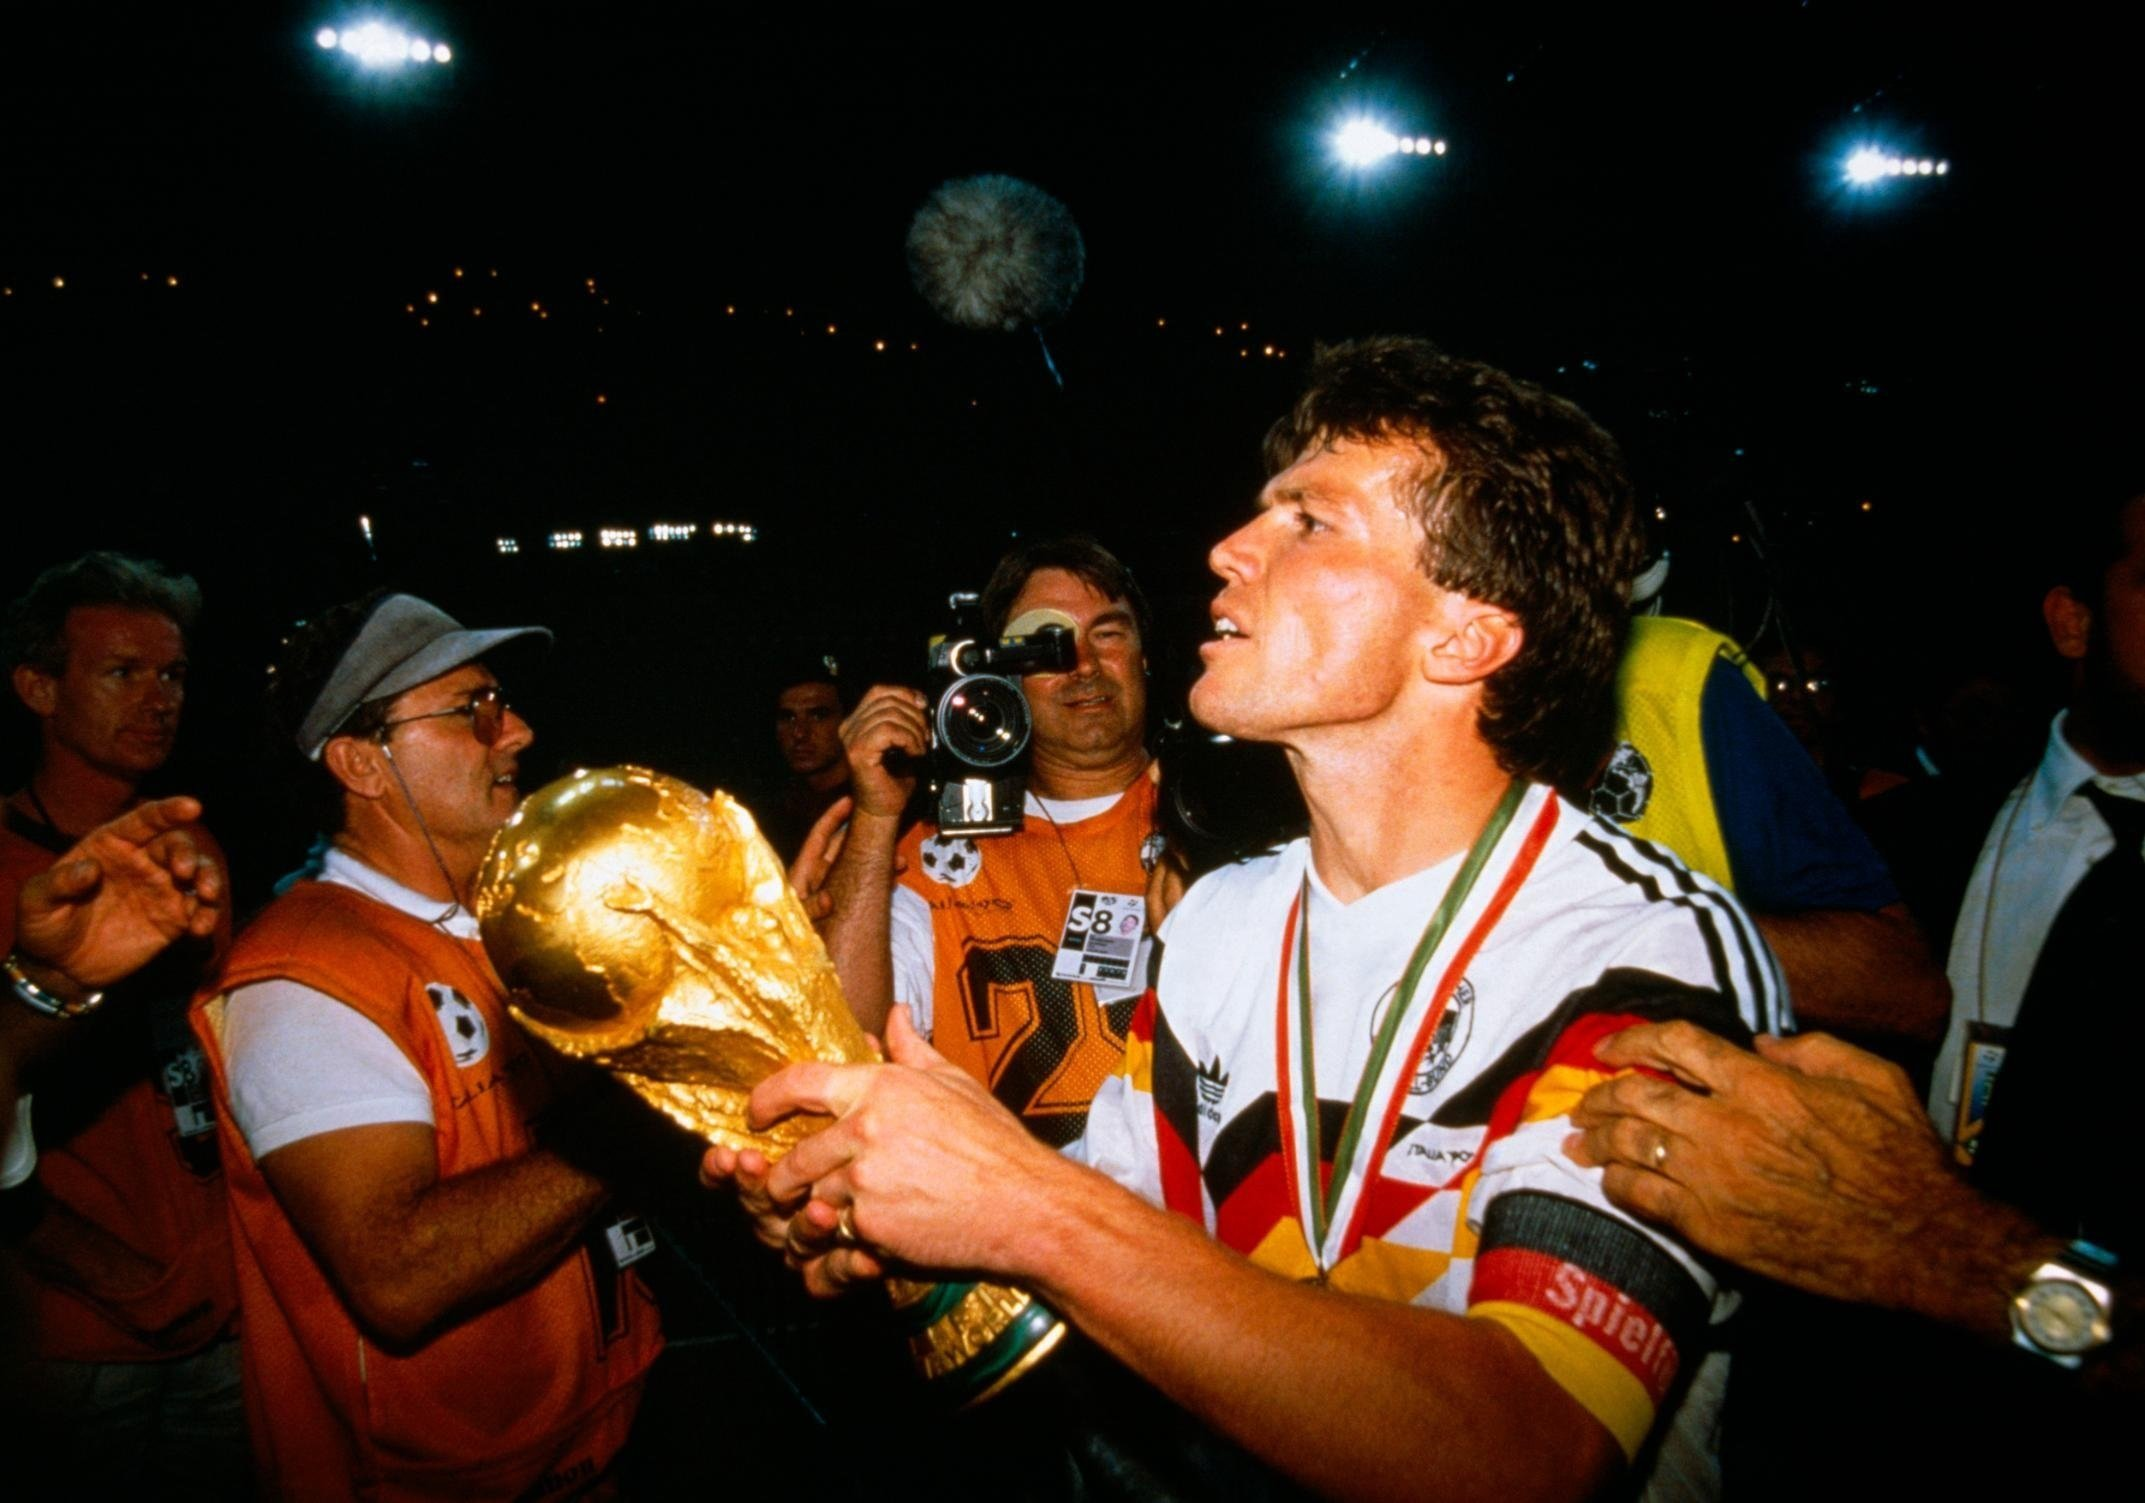 Germany captain Lothar Matthäus holds aloft the World Cup trohpy after defeating Argentina 1-0 in 1990.  CREDIT: Jean-Yves Ruszneiwski/Corbis Historical/VCG via Getty Images